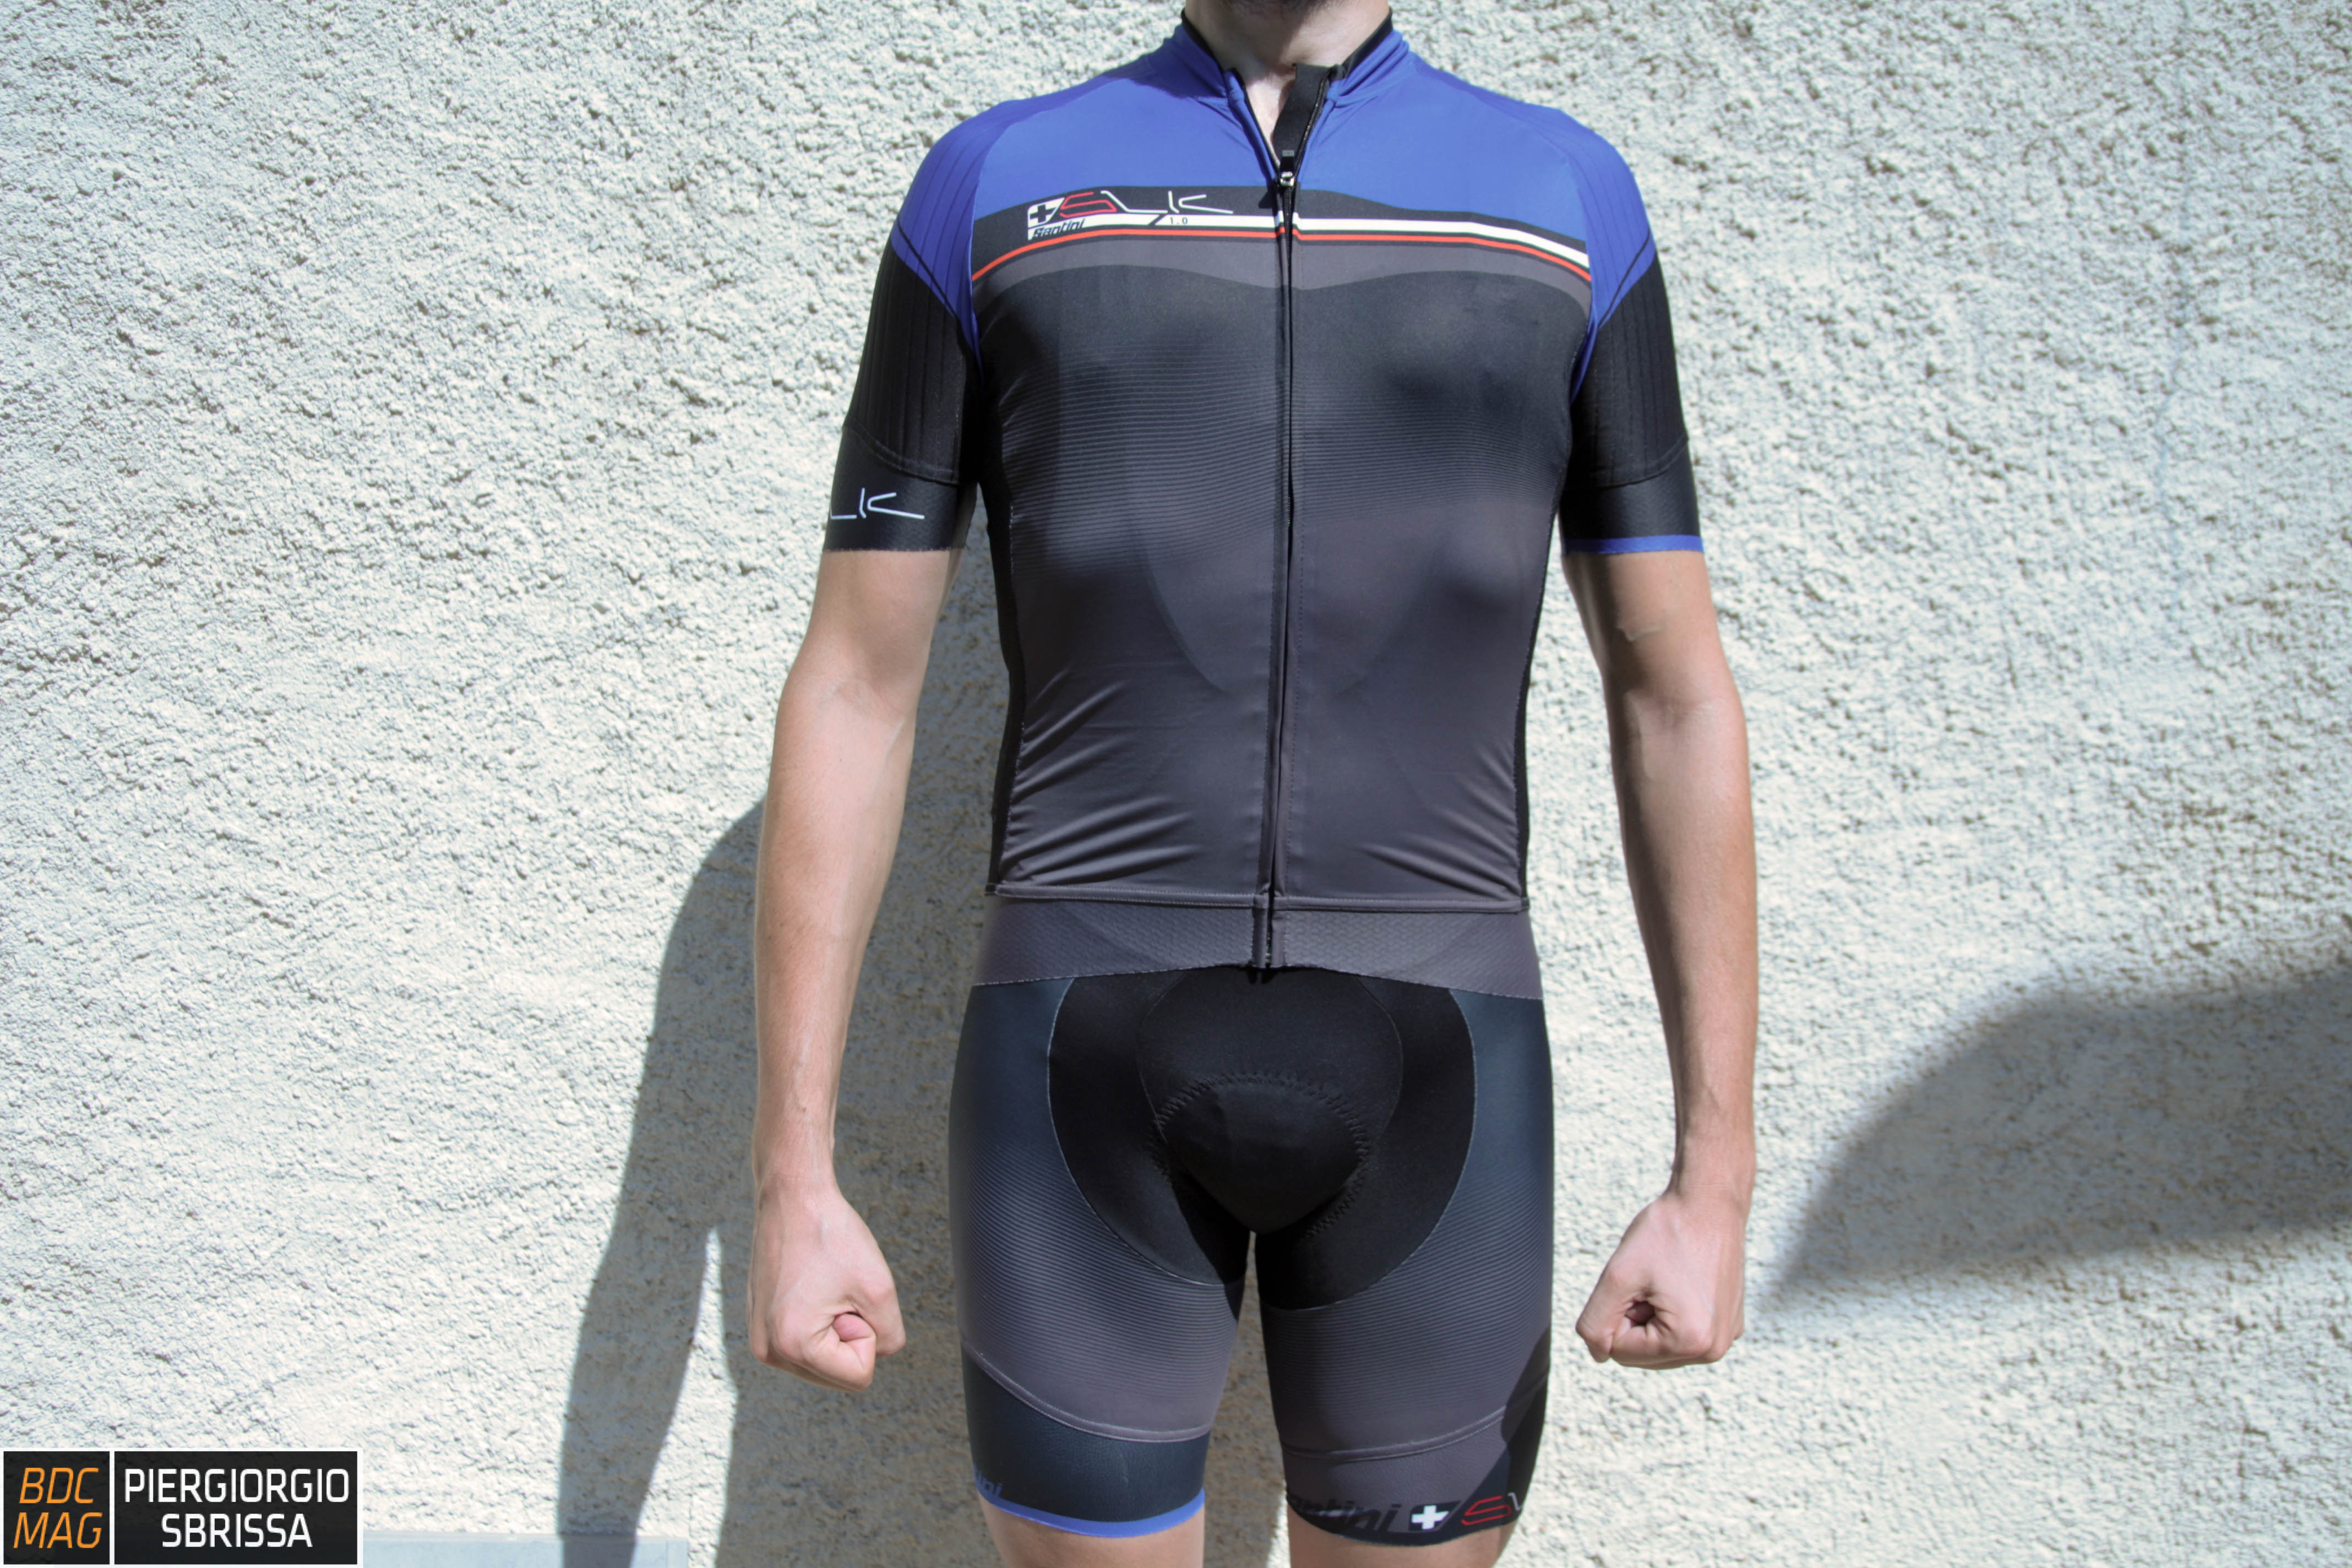 [Test] Santini Sleek Plus maglia e pantaloncini